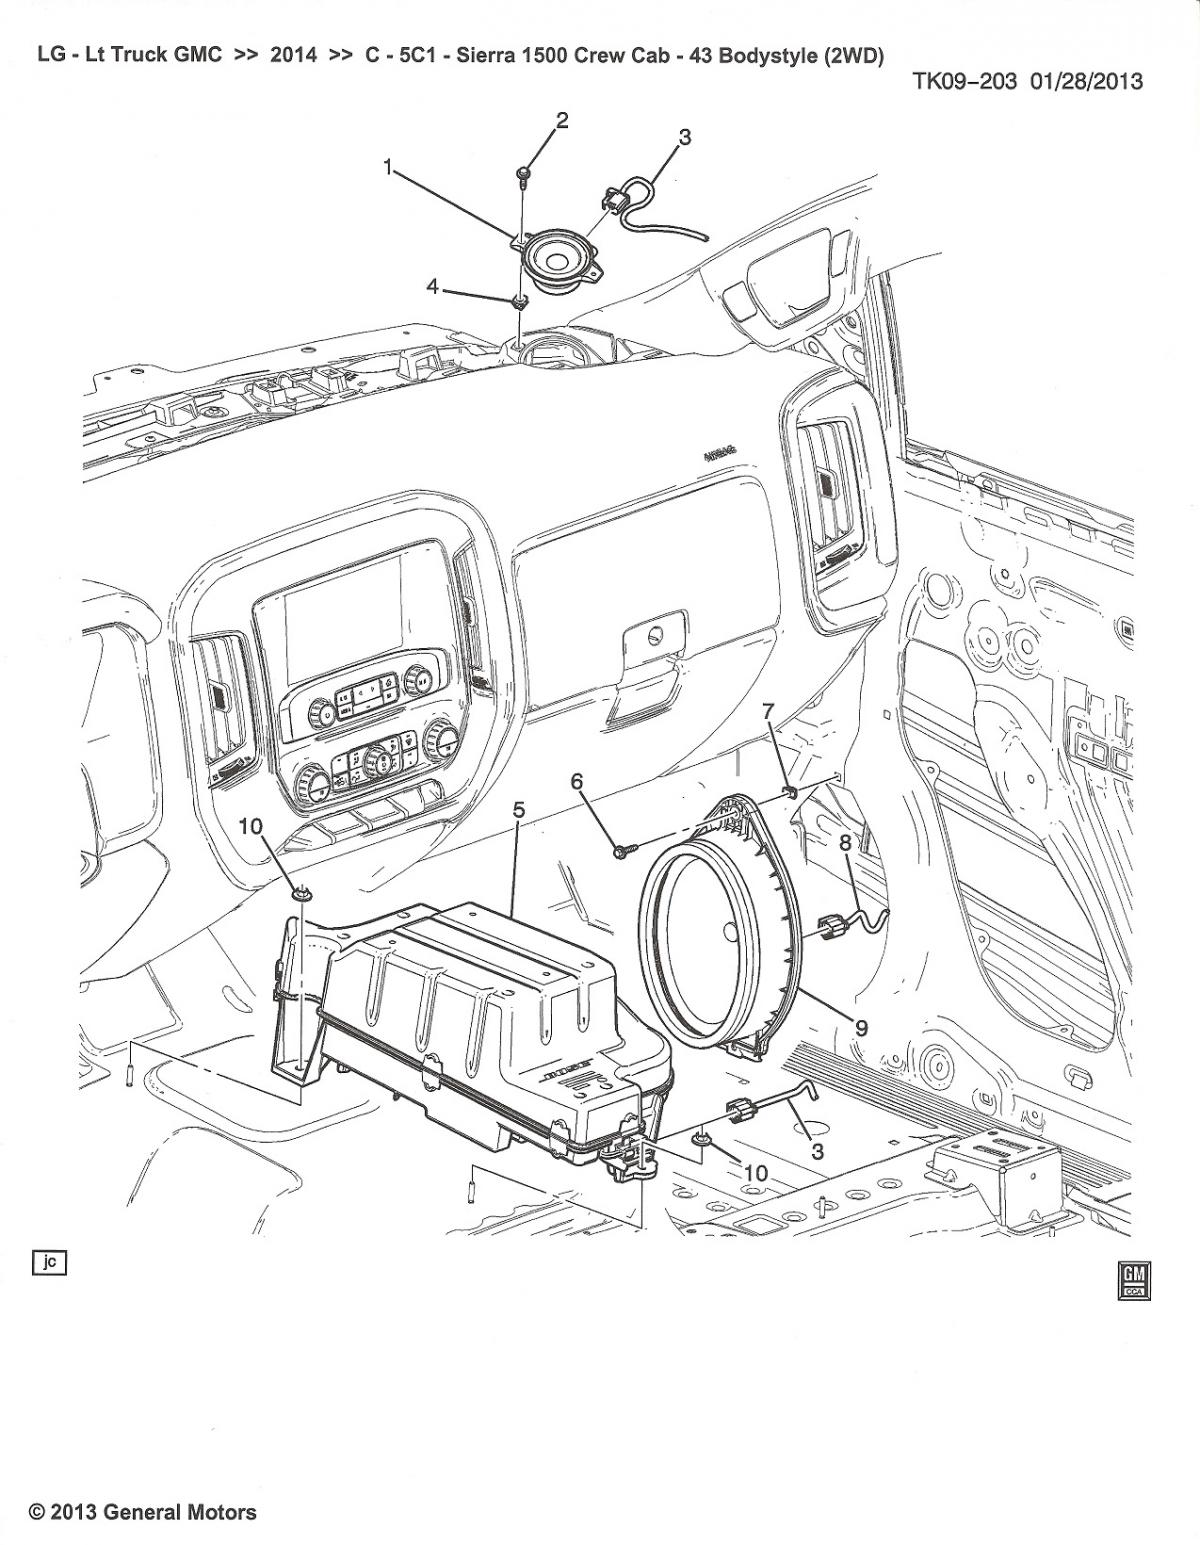 Chevy Truck Drawing At Free For Personal Use 1988 Tail Light Wiring Harness Download 1200x1545 Dash Speakers